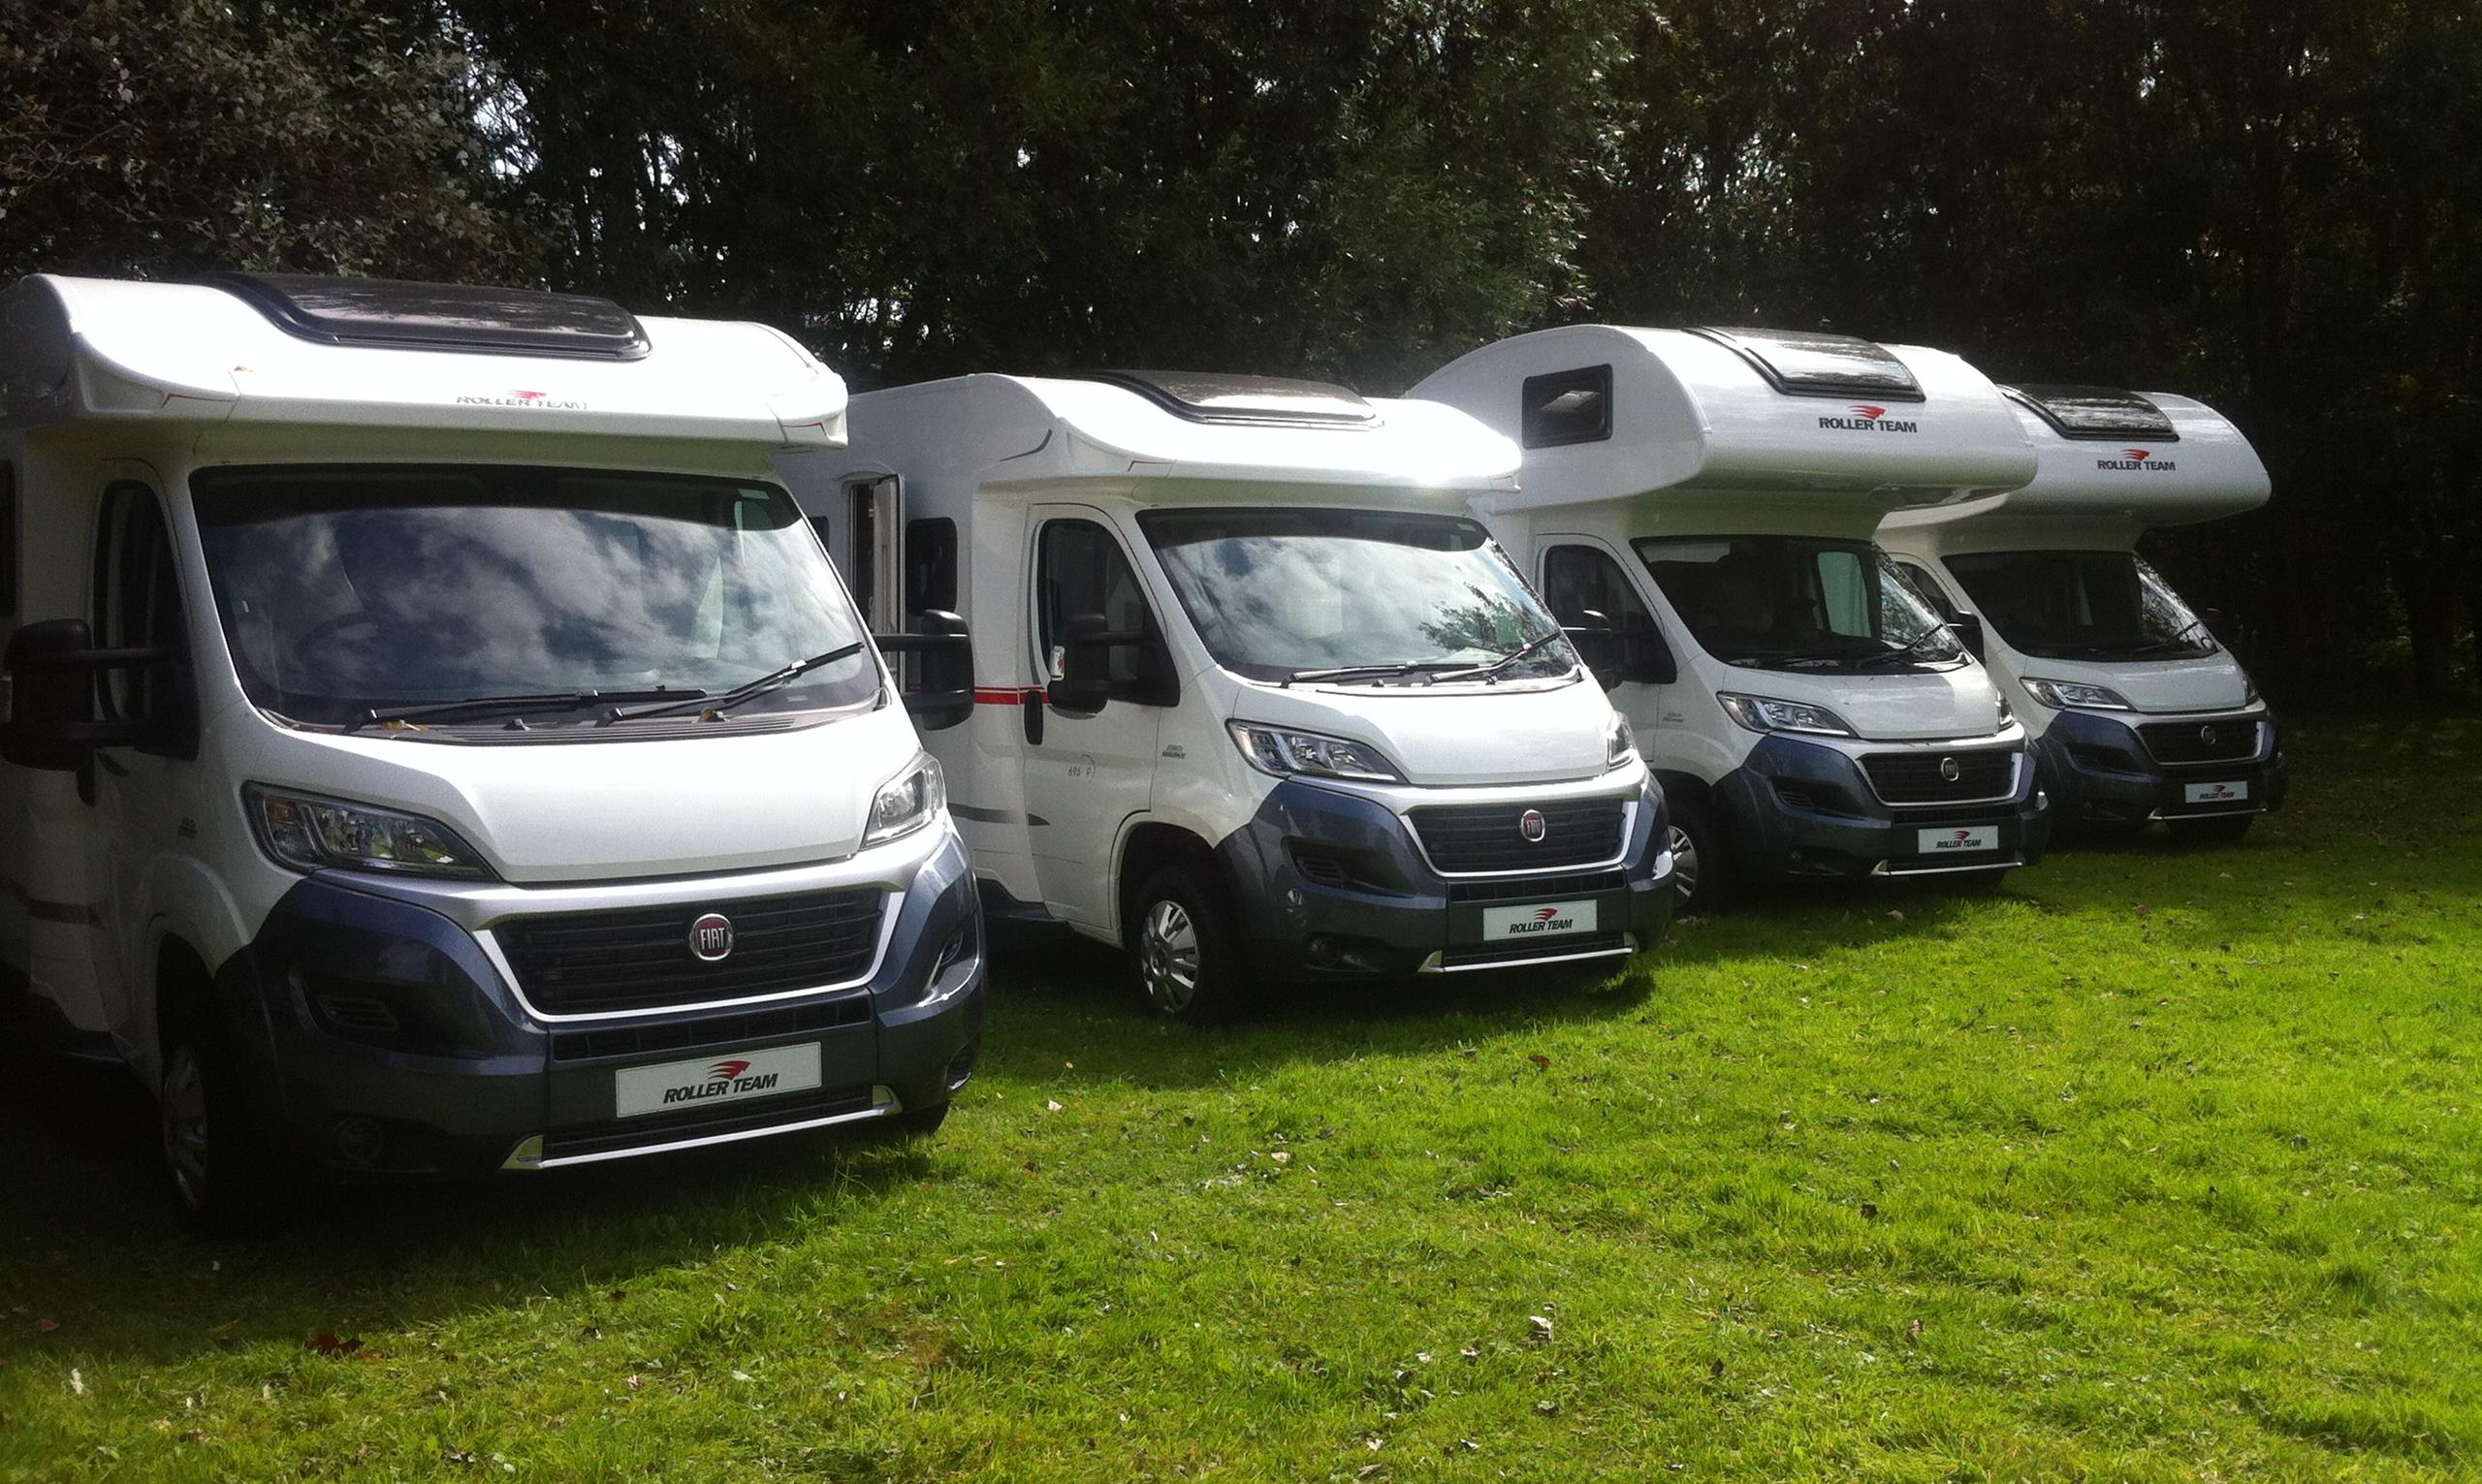 Original So There Wont Be Many Reviews Theyve Possibly Only Been In Business For A Year The Domain Name Is Registered To A Mateusz Stach In London SE3 I Recently Hired From This Company While The Camper Basically Worked Fine Other